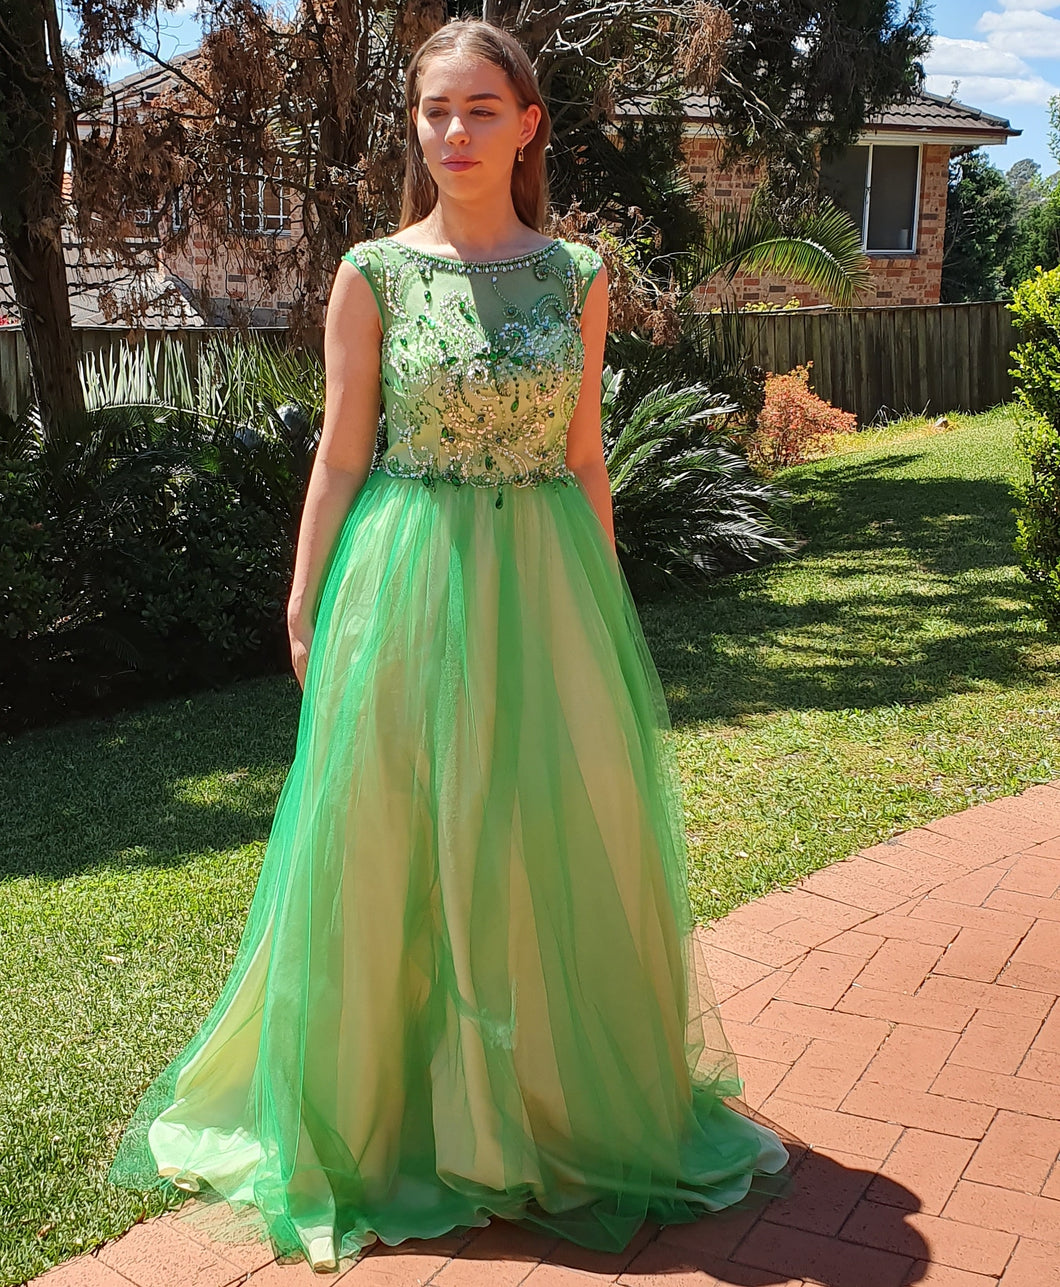 Illusion Beaded Neckline Ball Gown in Emerald Style 5058 by Miracle Agency